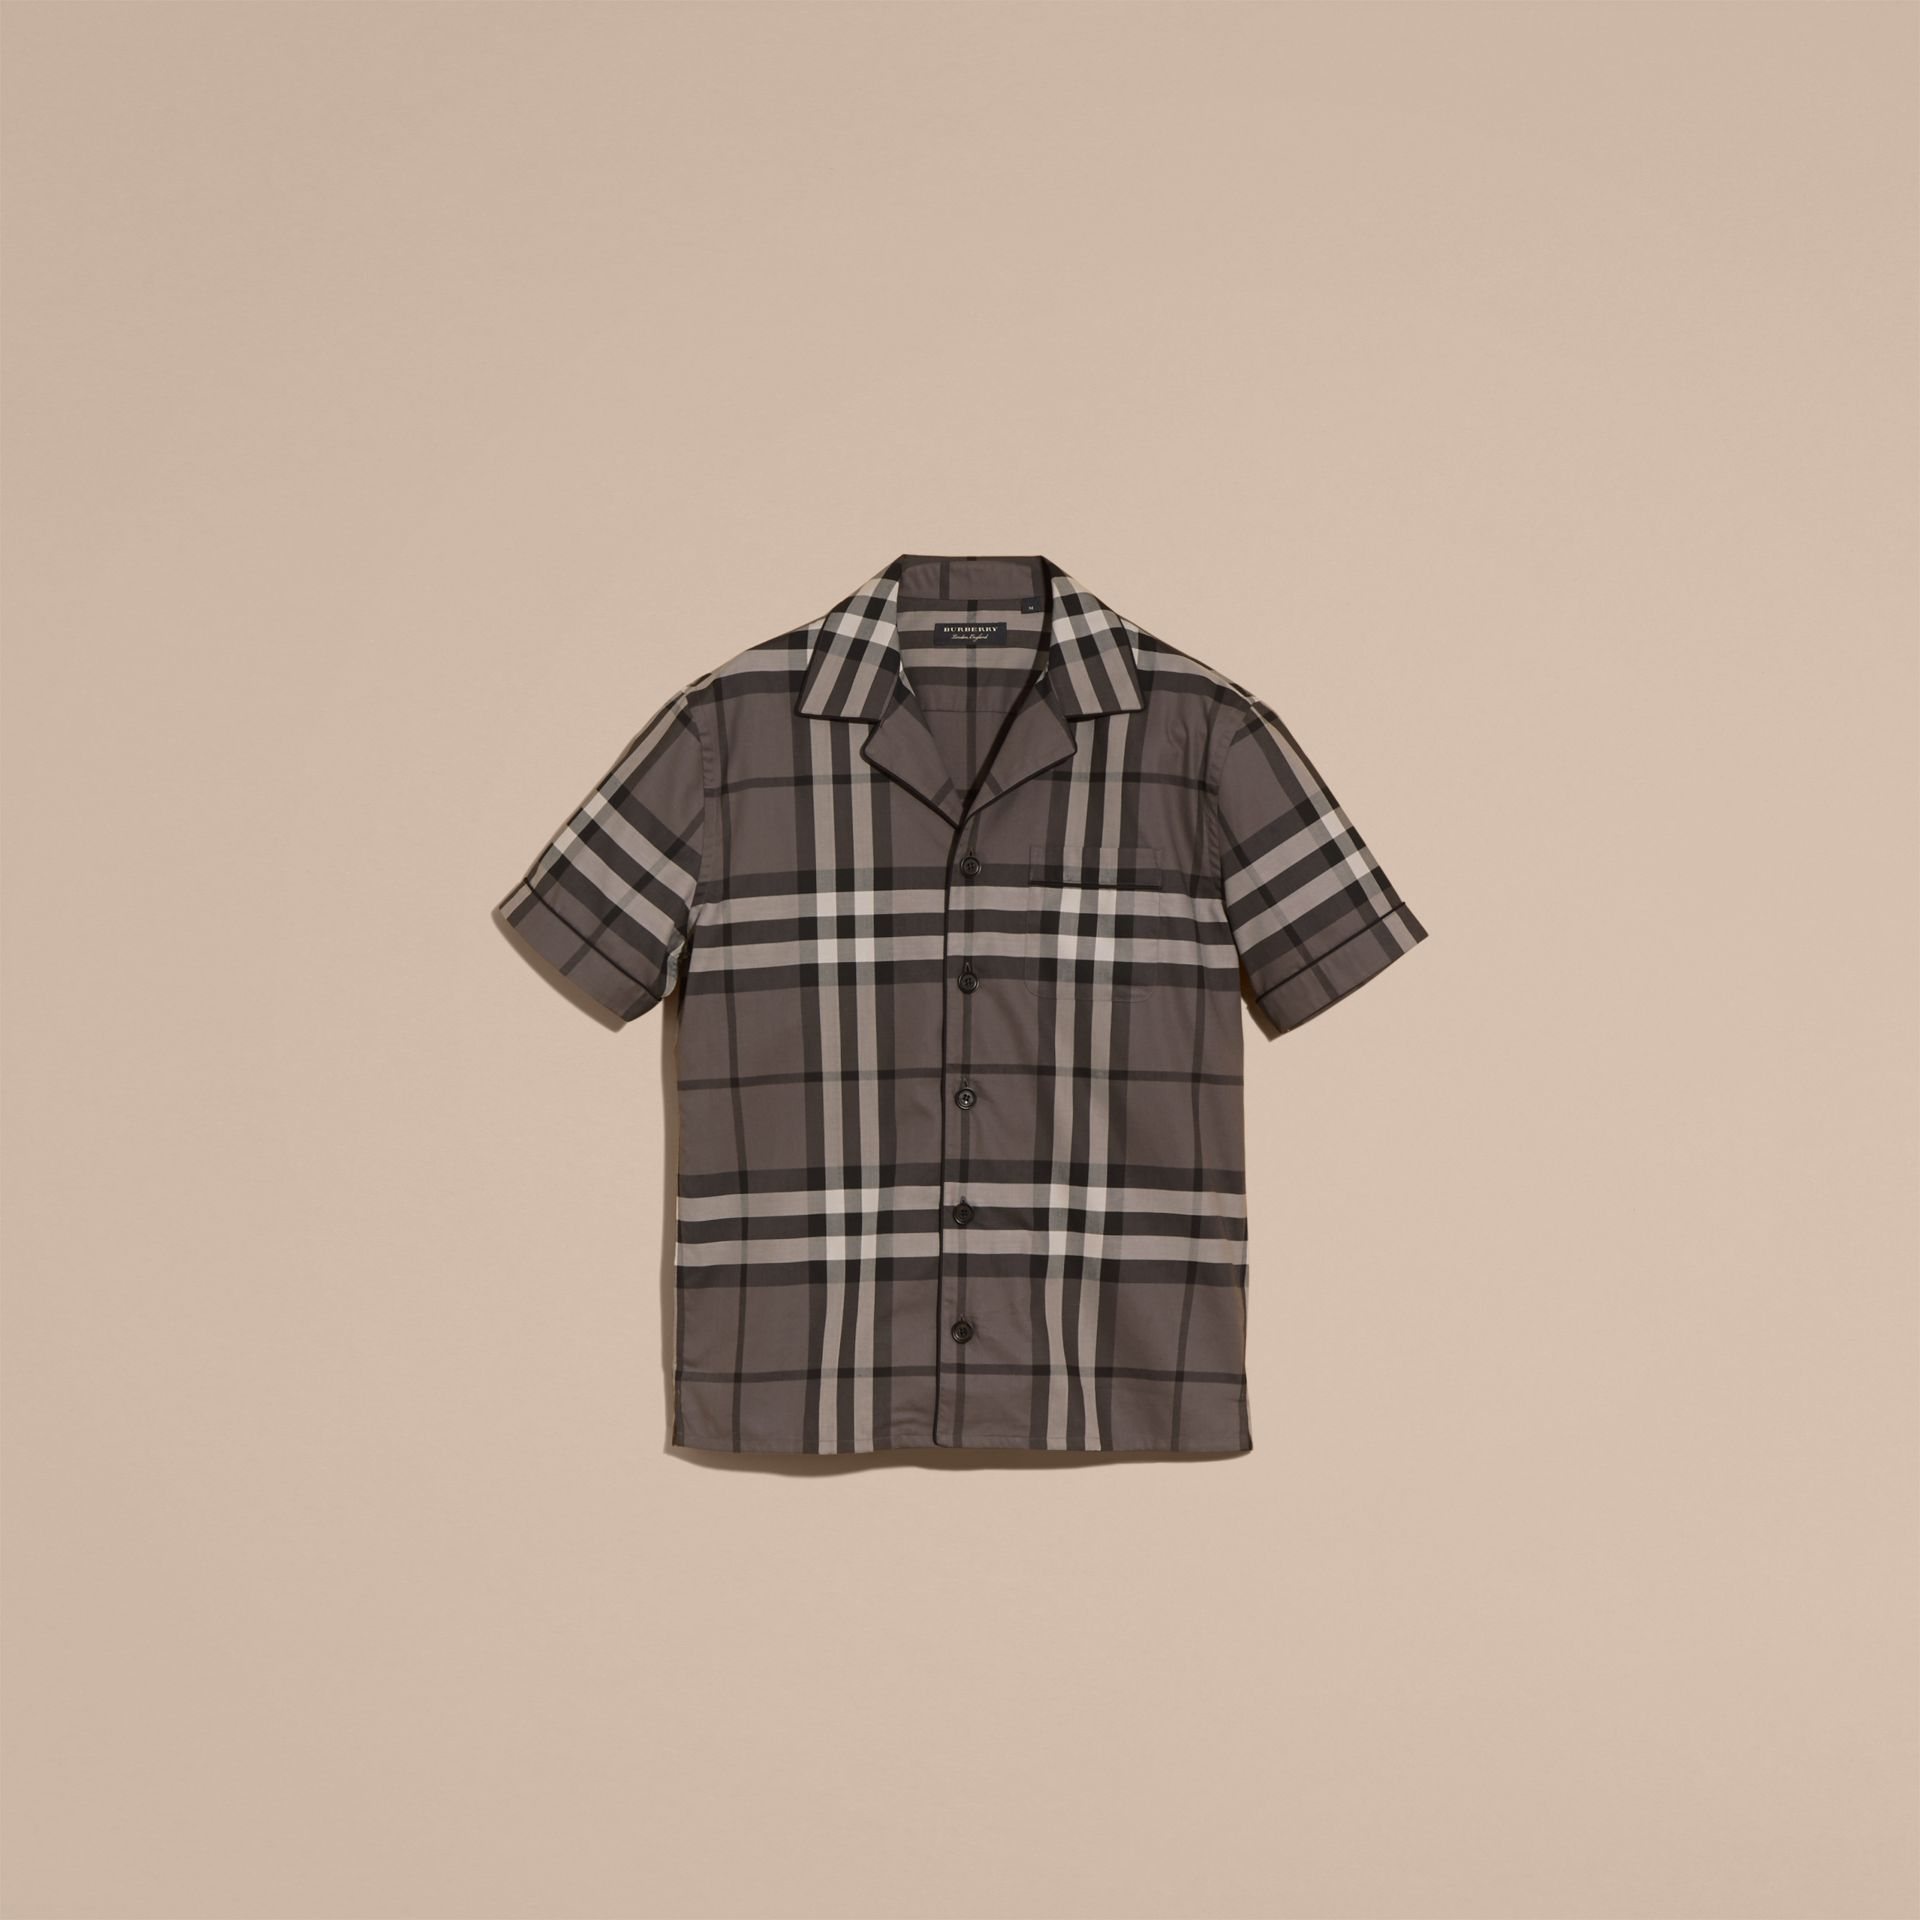 Charcoal Short-sleeved Check Cotton Pyjama-style Shirt - gallery image 4